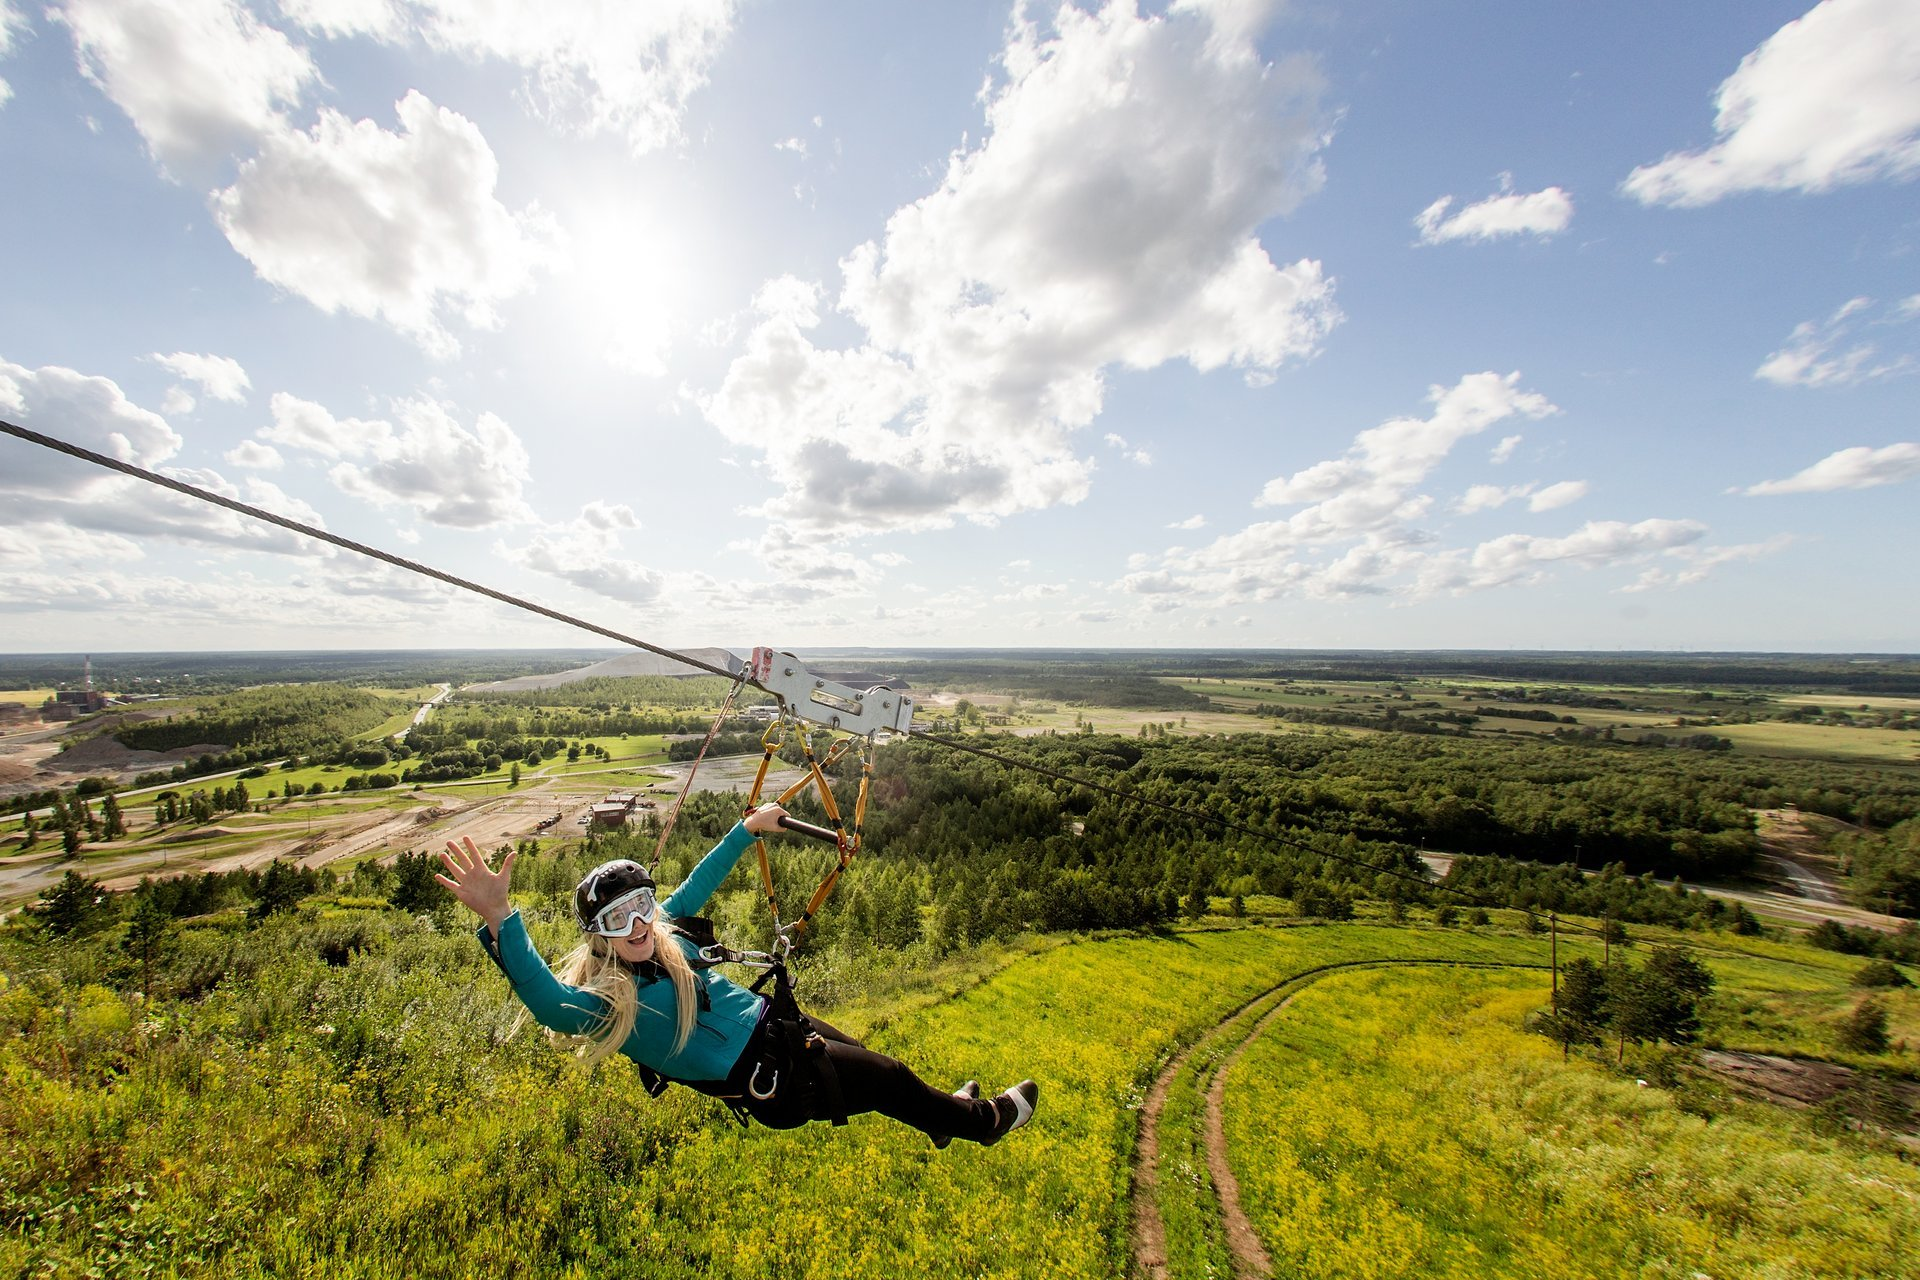 Zip-Line in Kiviõli in Estonia 2020 - Best Time